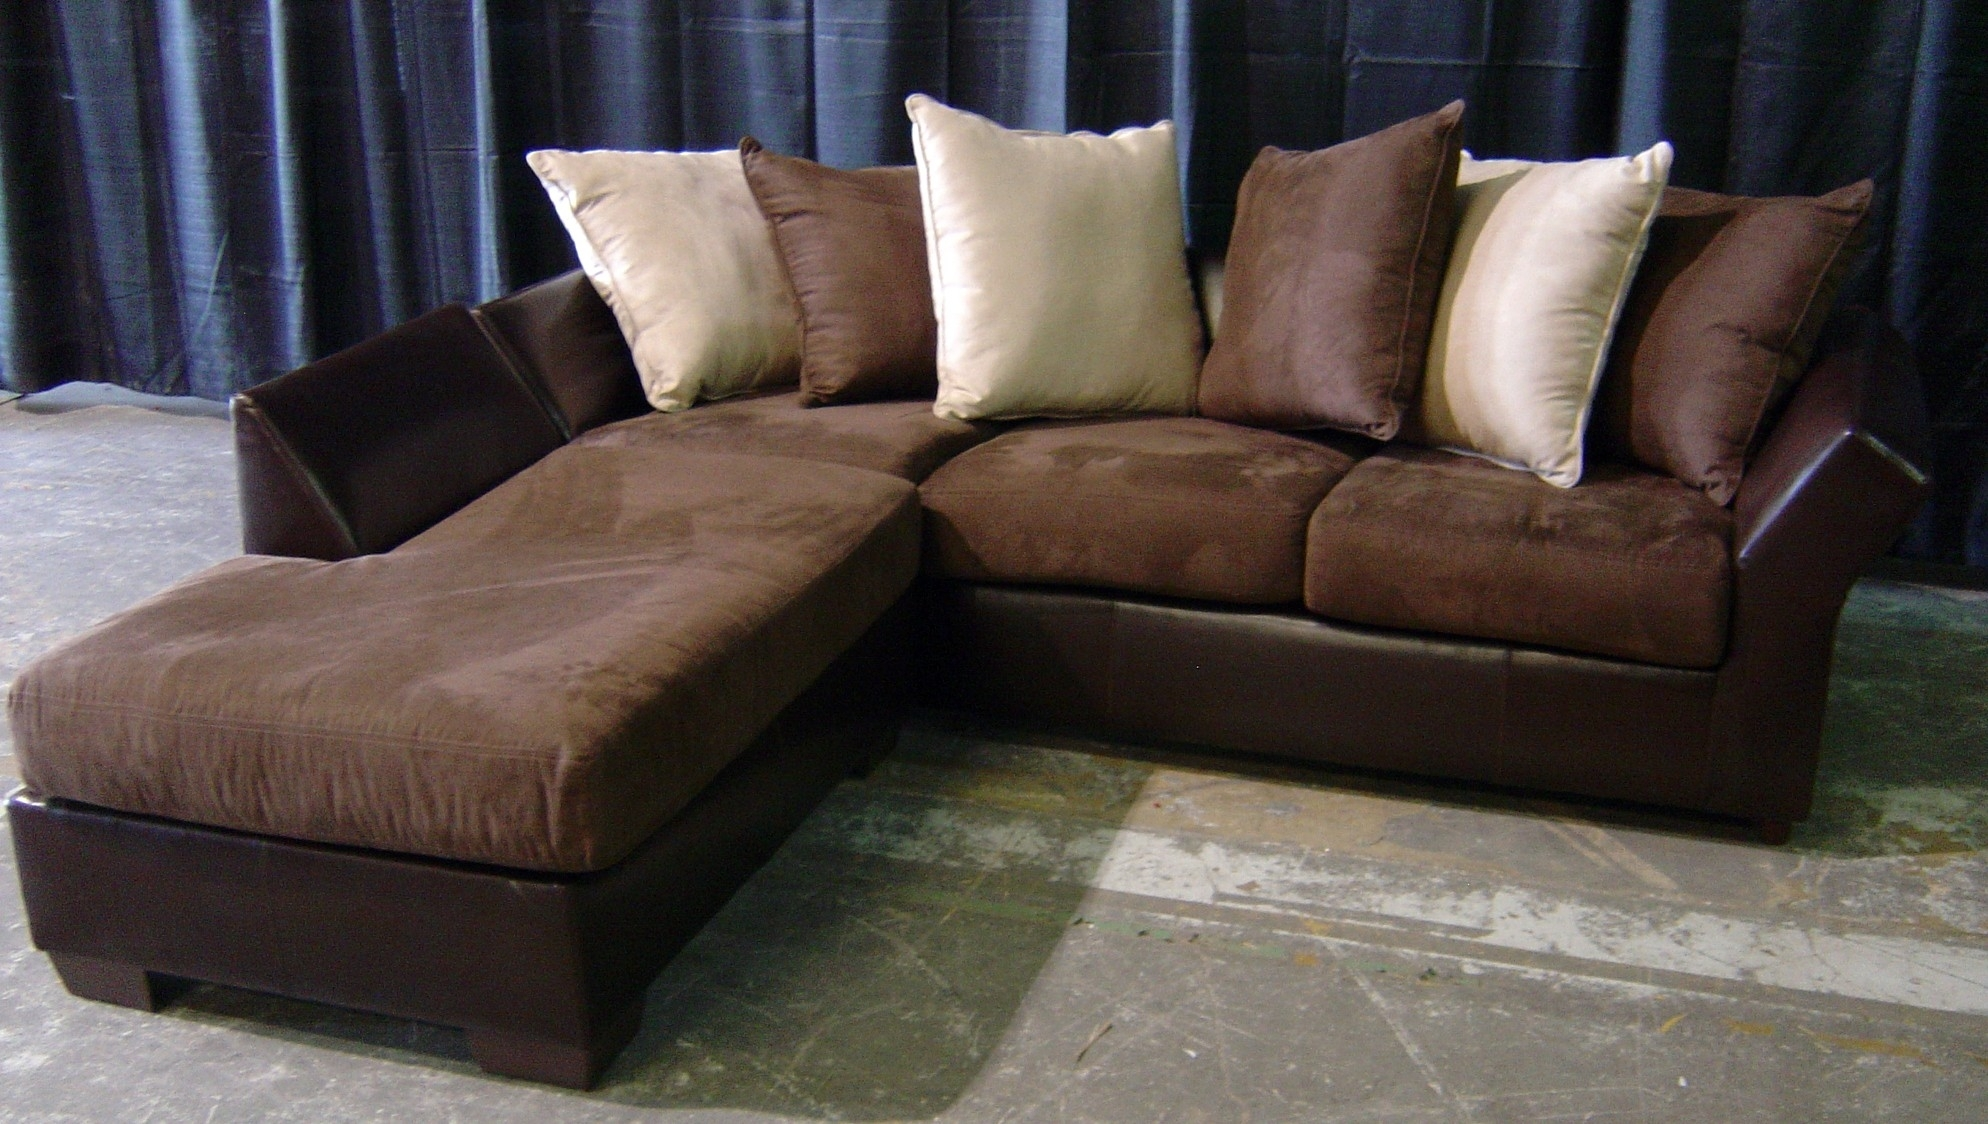 Awesome Leather And Suede Sectional Sofa 63 For With Leather And For Leather And Suede Sectional Sofas (Image 1 of 10)